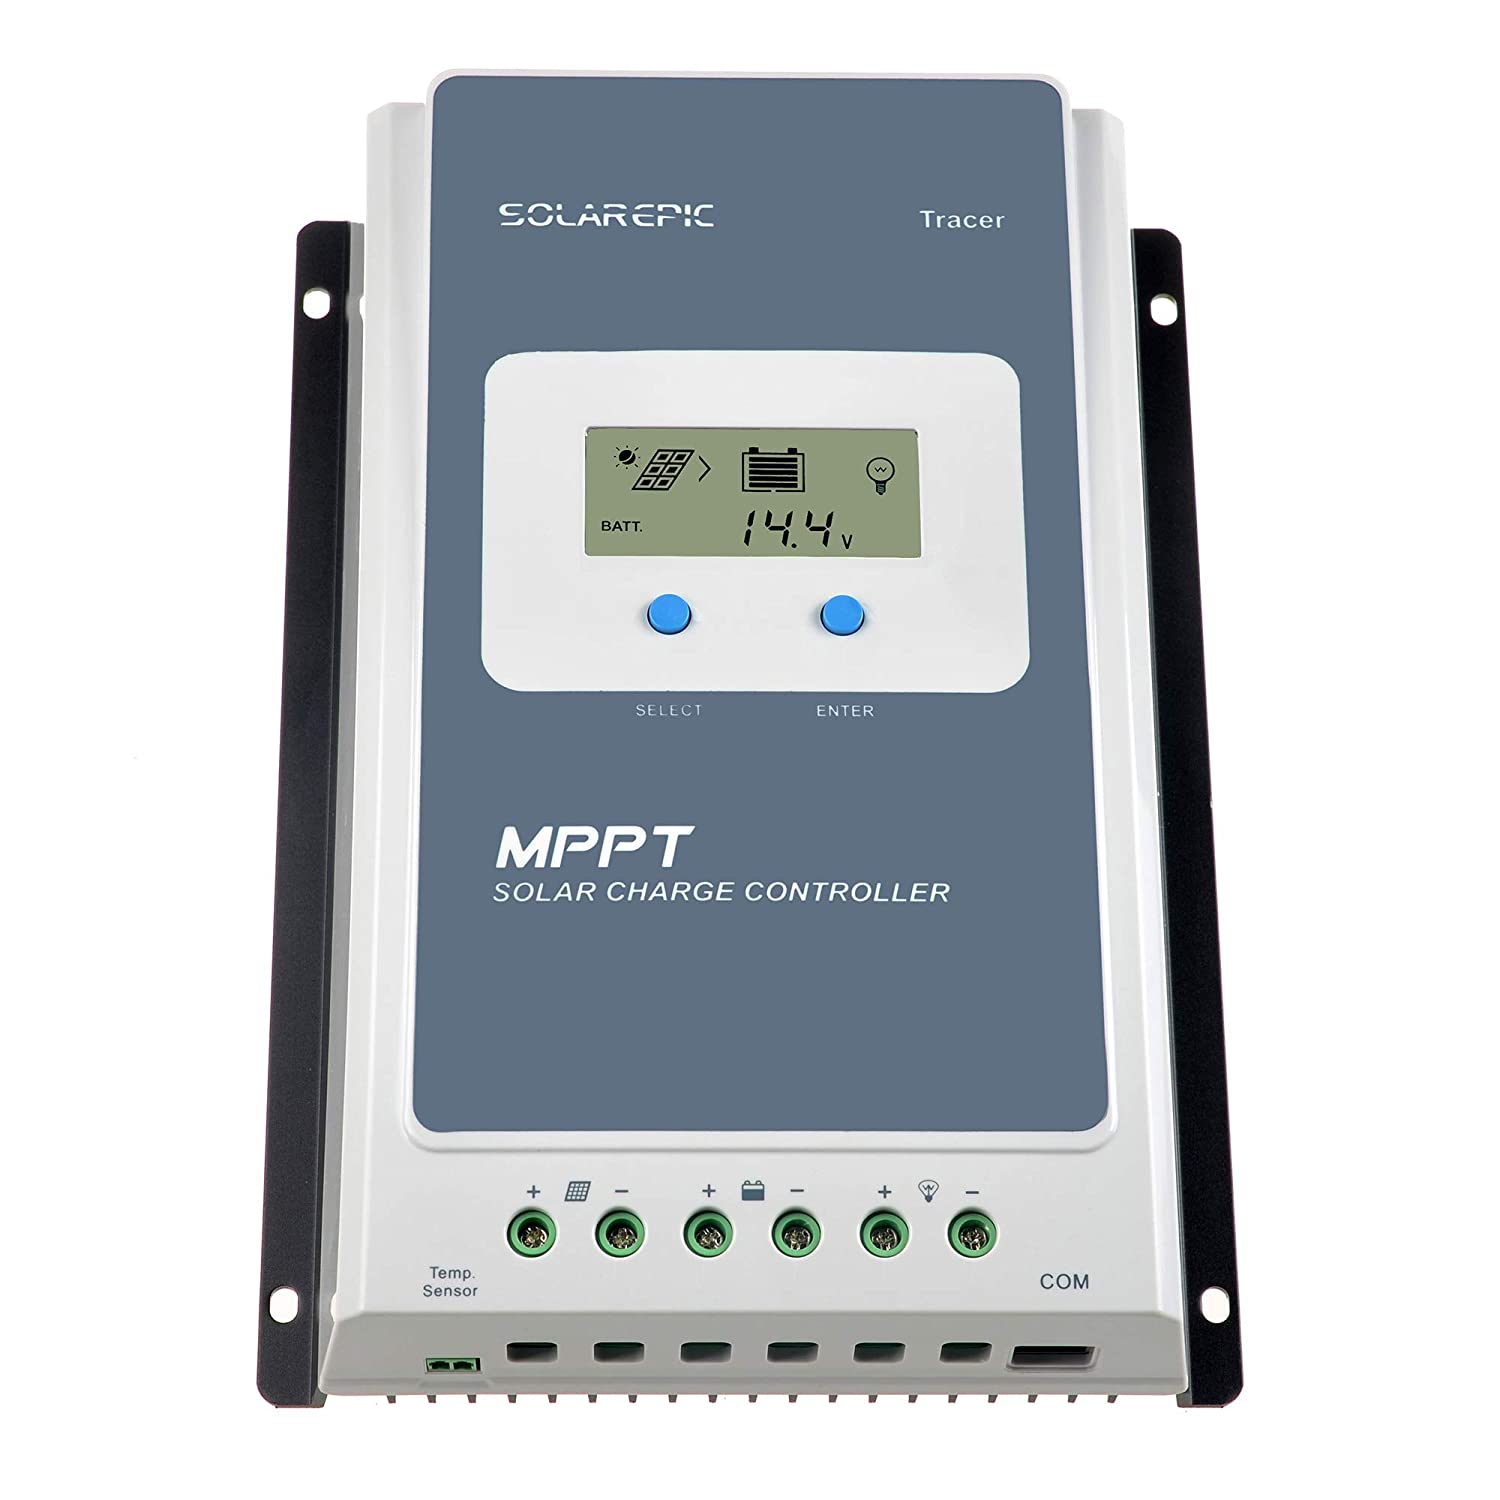 EPEVER MPPT Solar Charge Controller 40A 100V PV Negative Ground with MT50 Remote Meter Solar Panel Controller Works with 12//24V Battery AGM and LiFePO4 Battery Charger Tracer4210AN